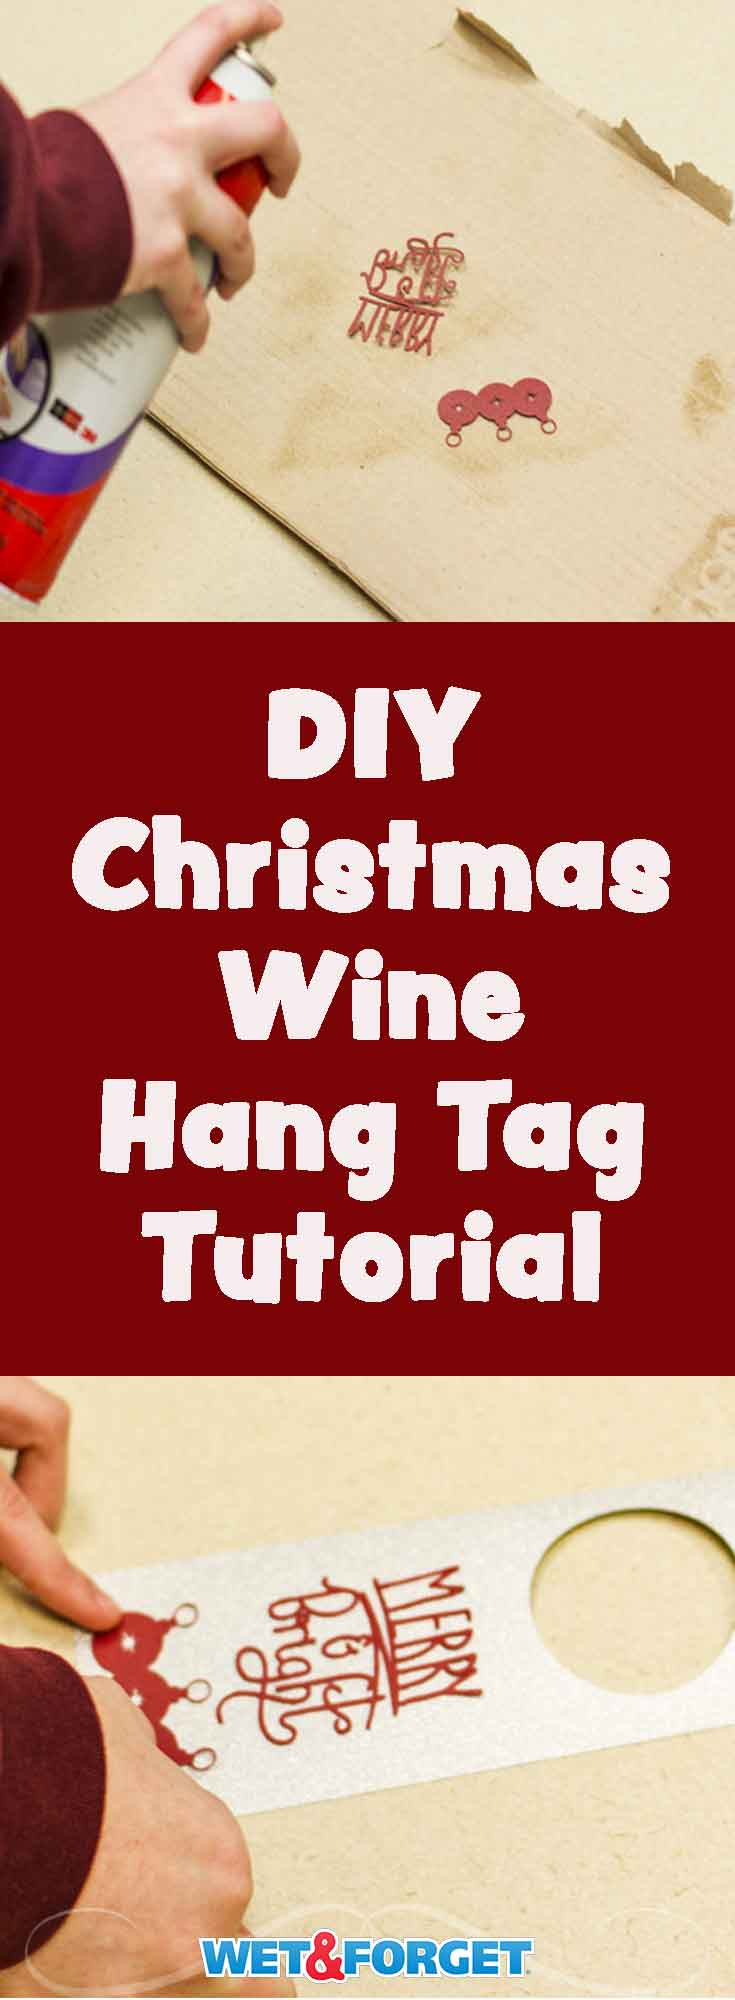 Personalize your holiday wine gifts with this quick and easy DIY hang tag!